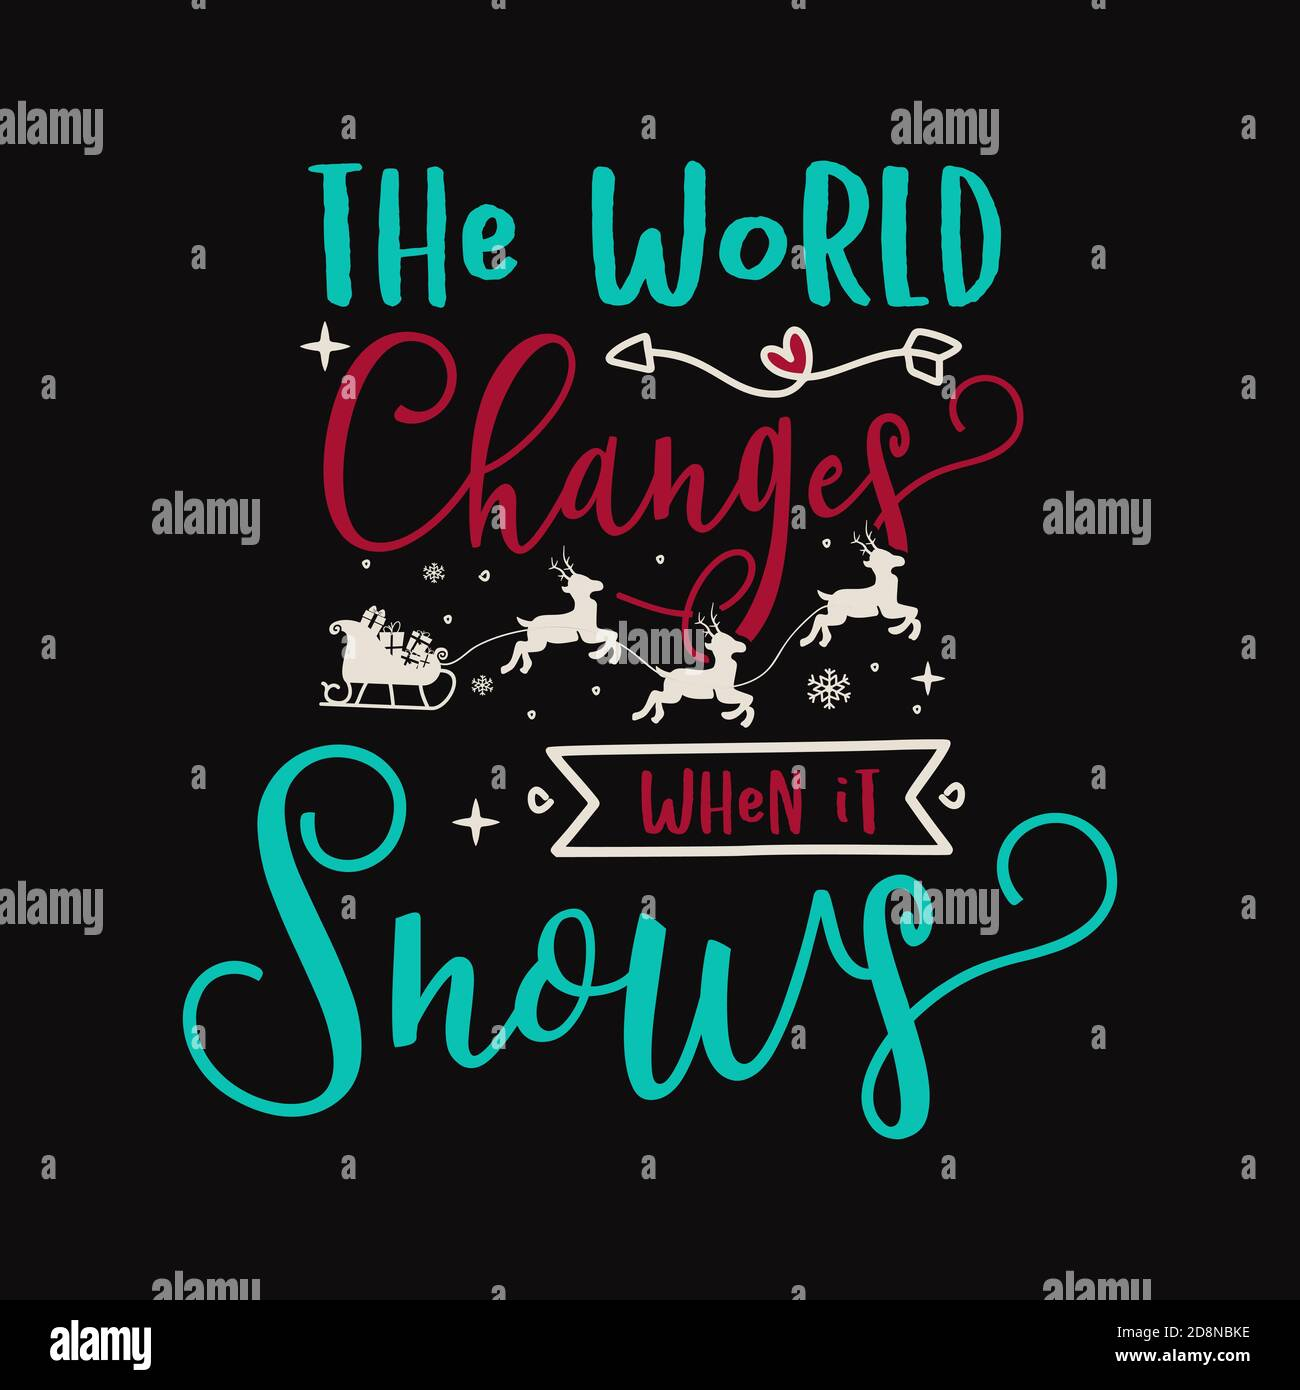 Christmas lettering quote. Silhouette calligraphy poster with quote - The world changes when it snows. With deers, decorations. Illustration for Stock Vector